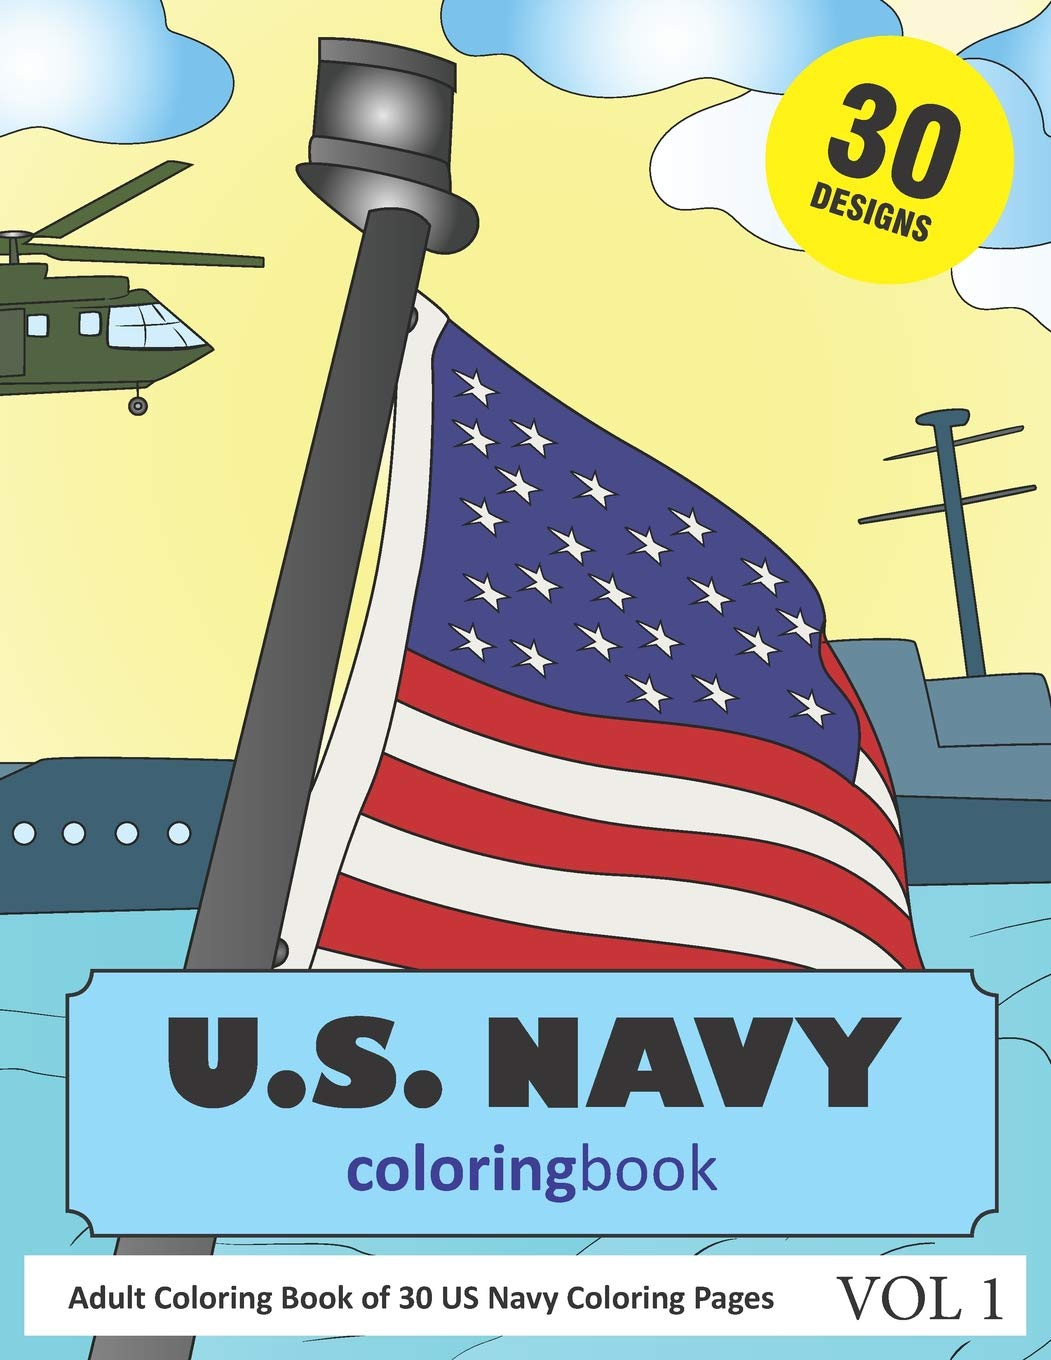 Amazon Com Us Navy Coloring Book 30 Coloring Pages Of Us Navy Designs In Coloring Book For Adults Vol 1 9781790286515 Rai Sonia Books